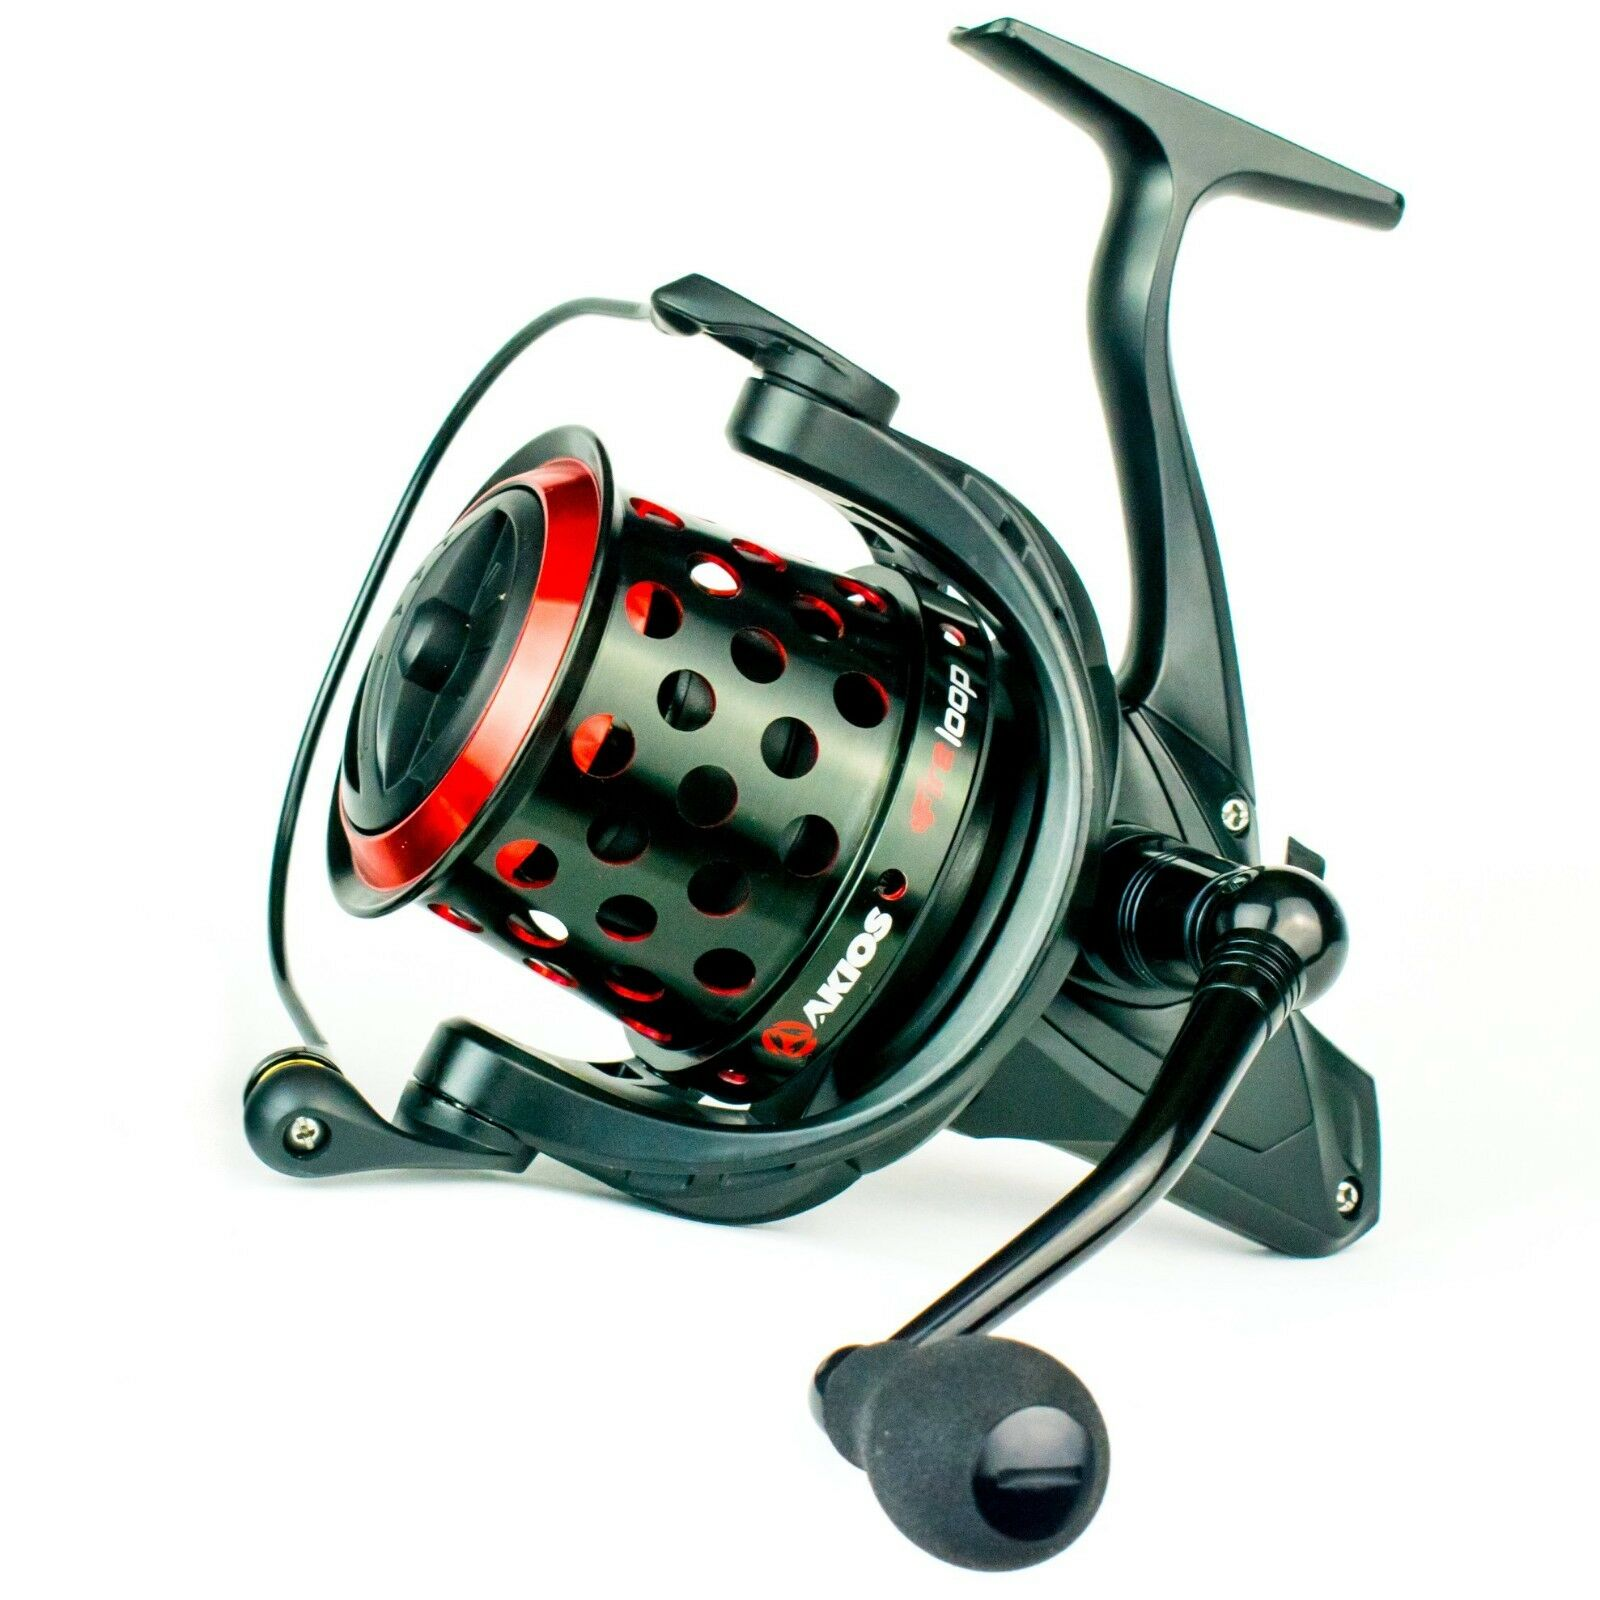 NEW Akios Fireloop Spinning Fishing Reel Great for Long Casting and Power